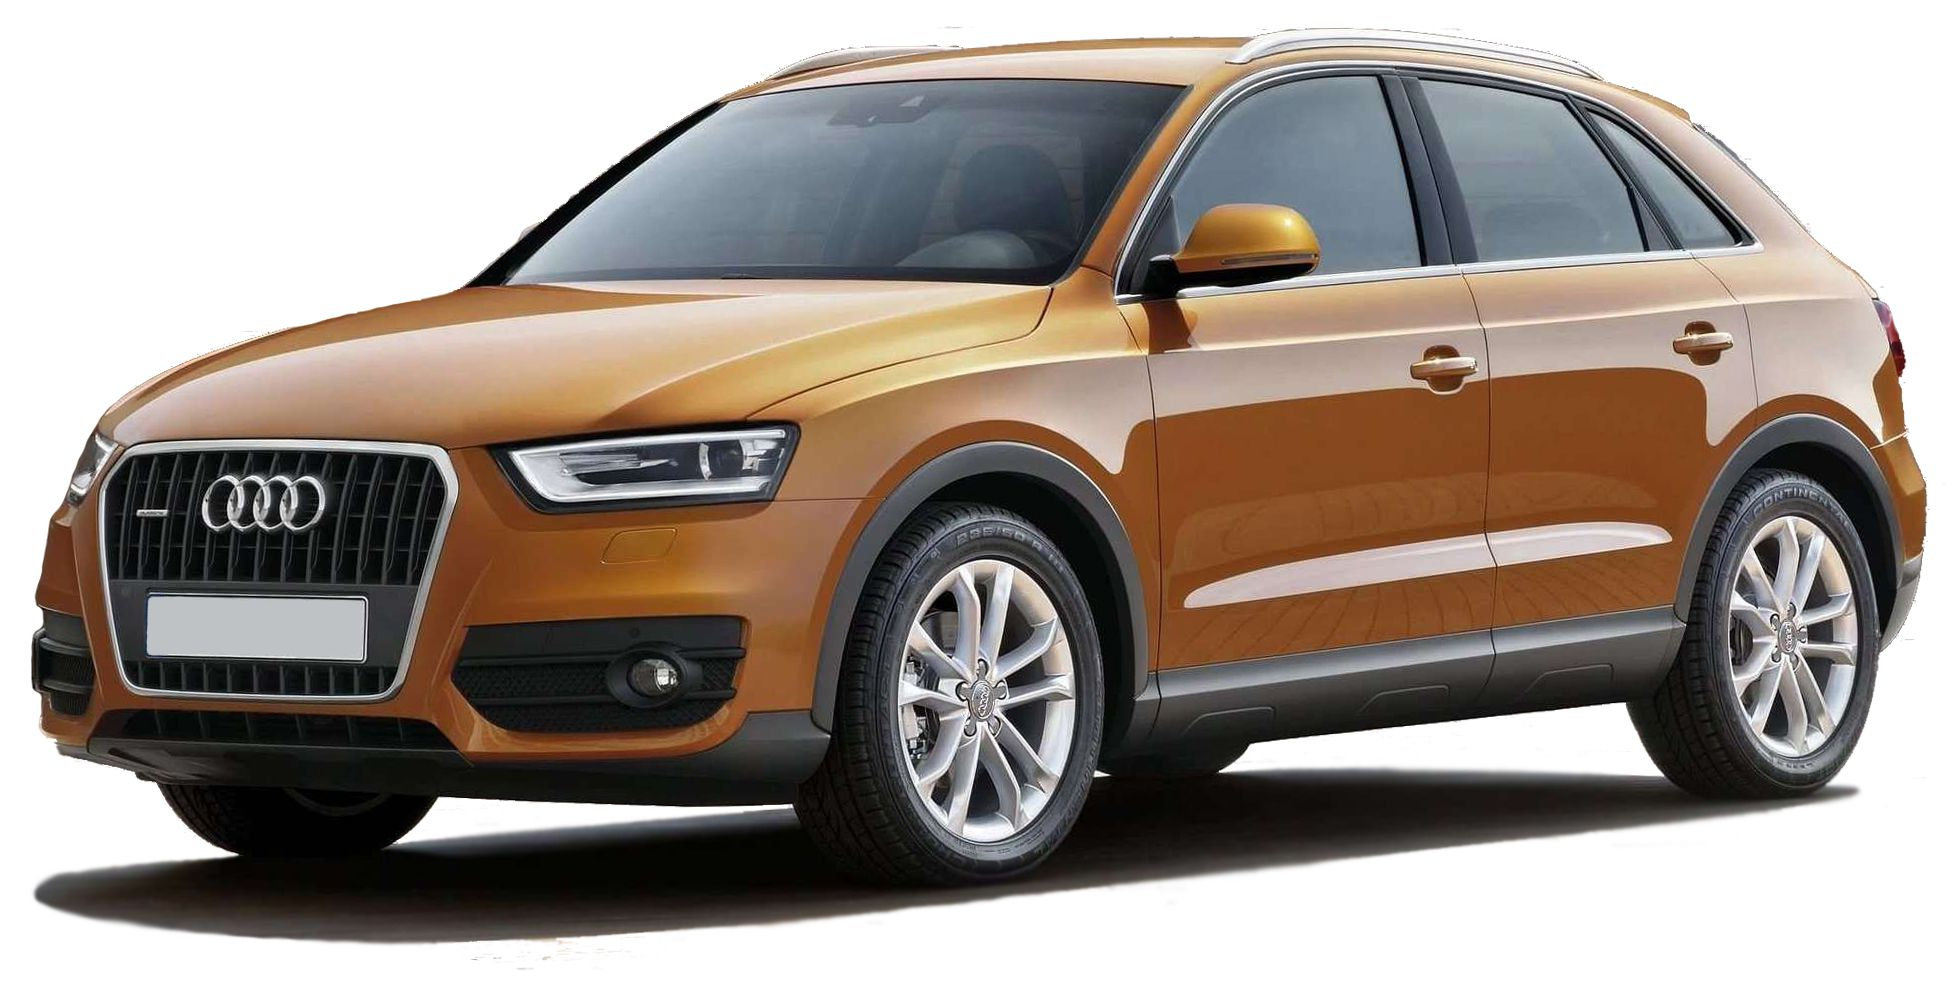 Audi Q3 (2012 to Onwards) Front Image